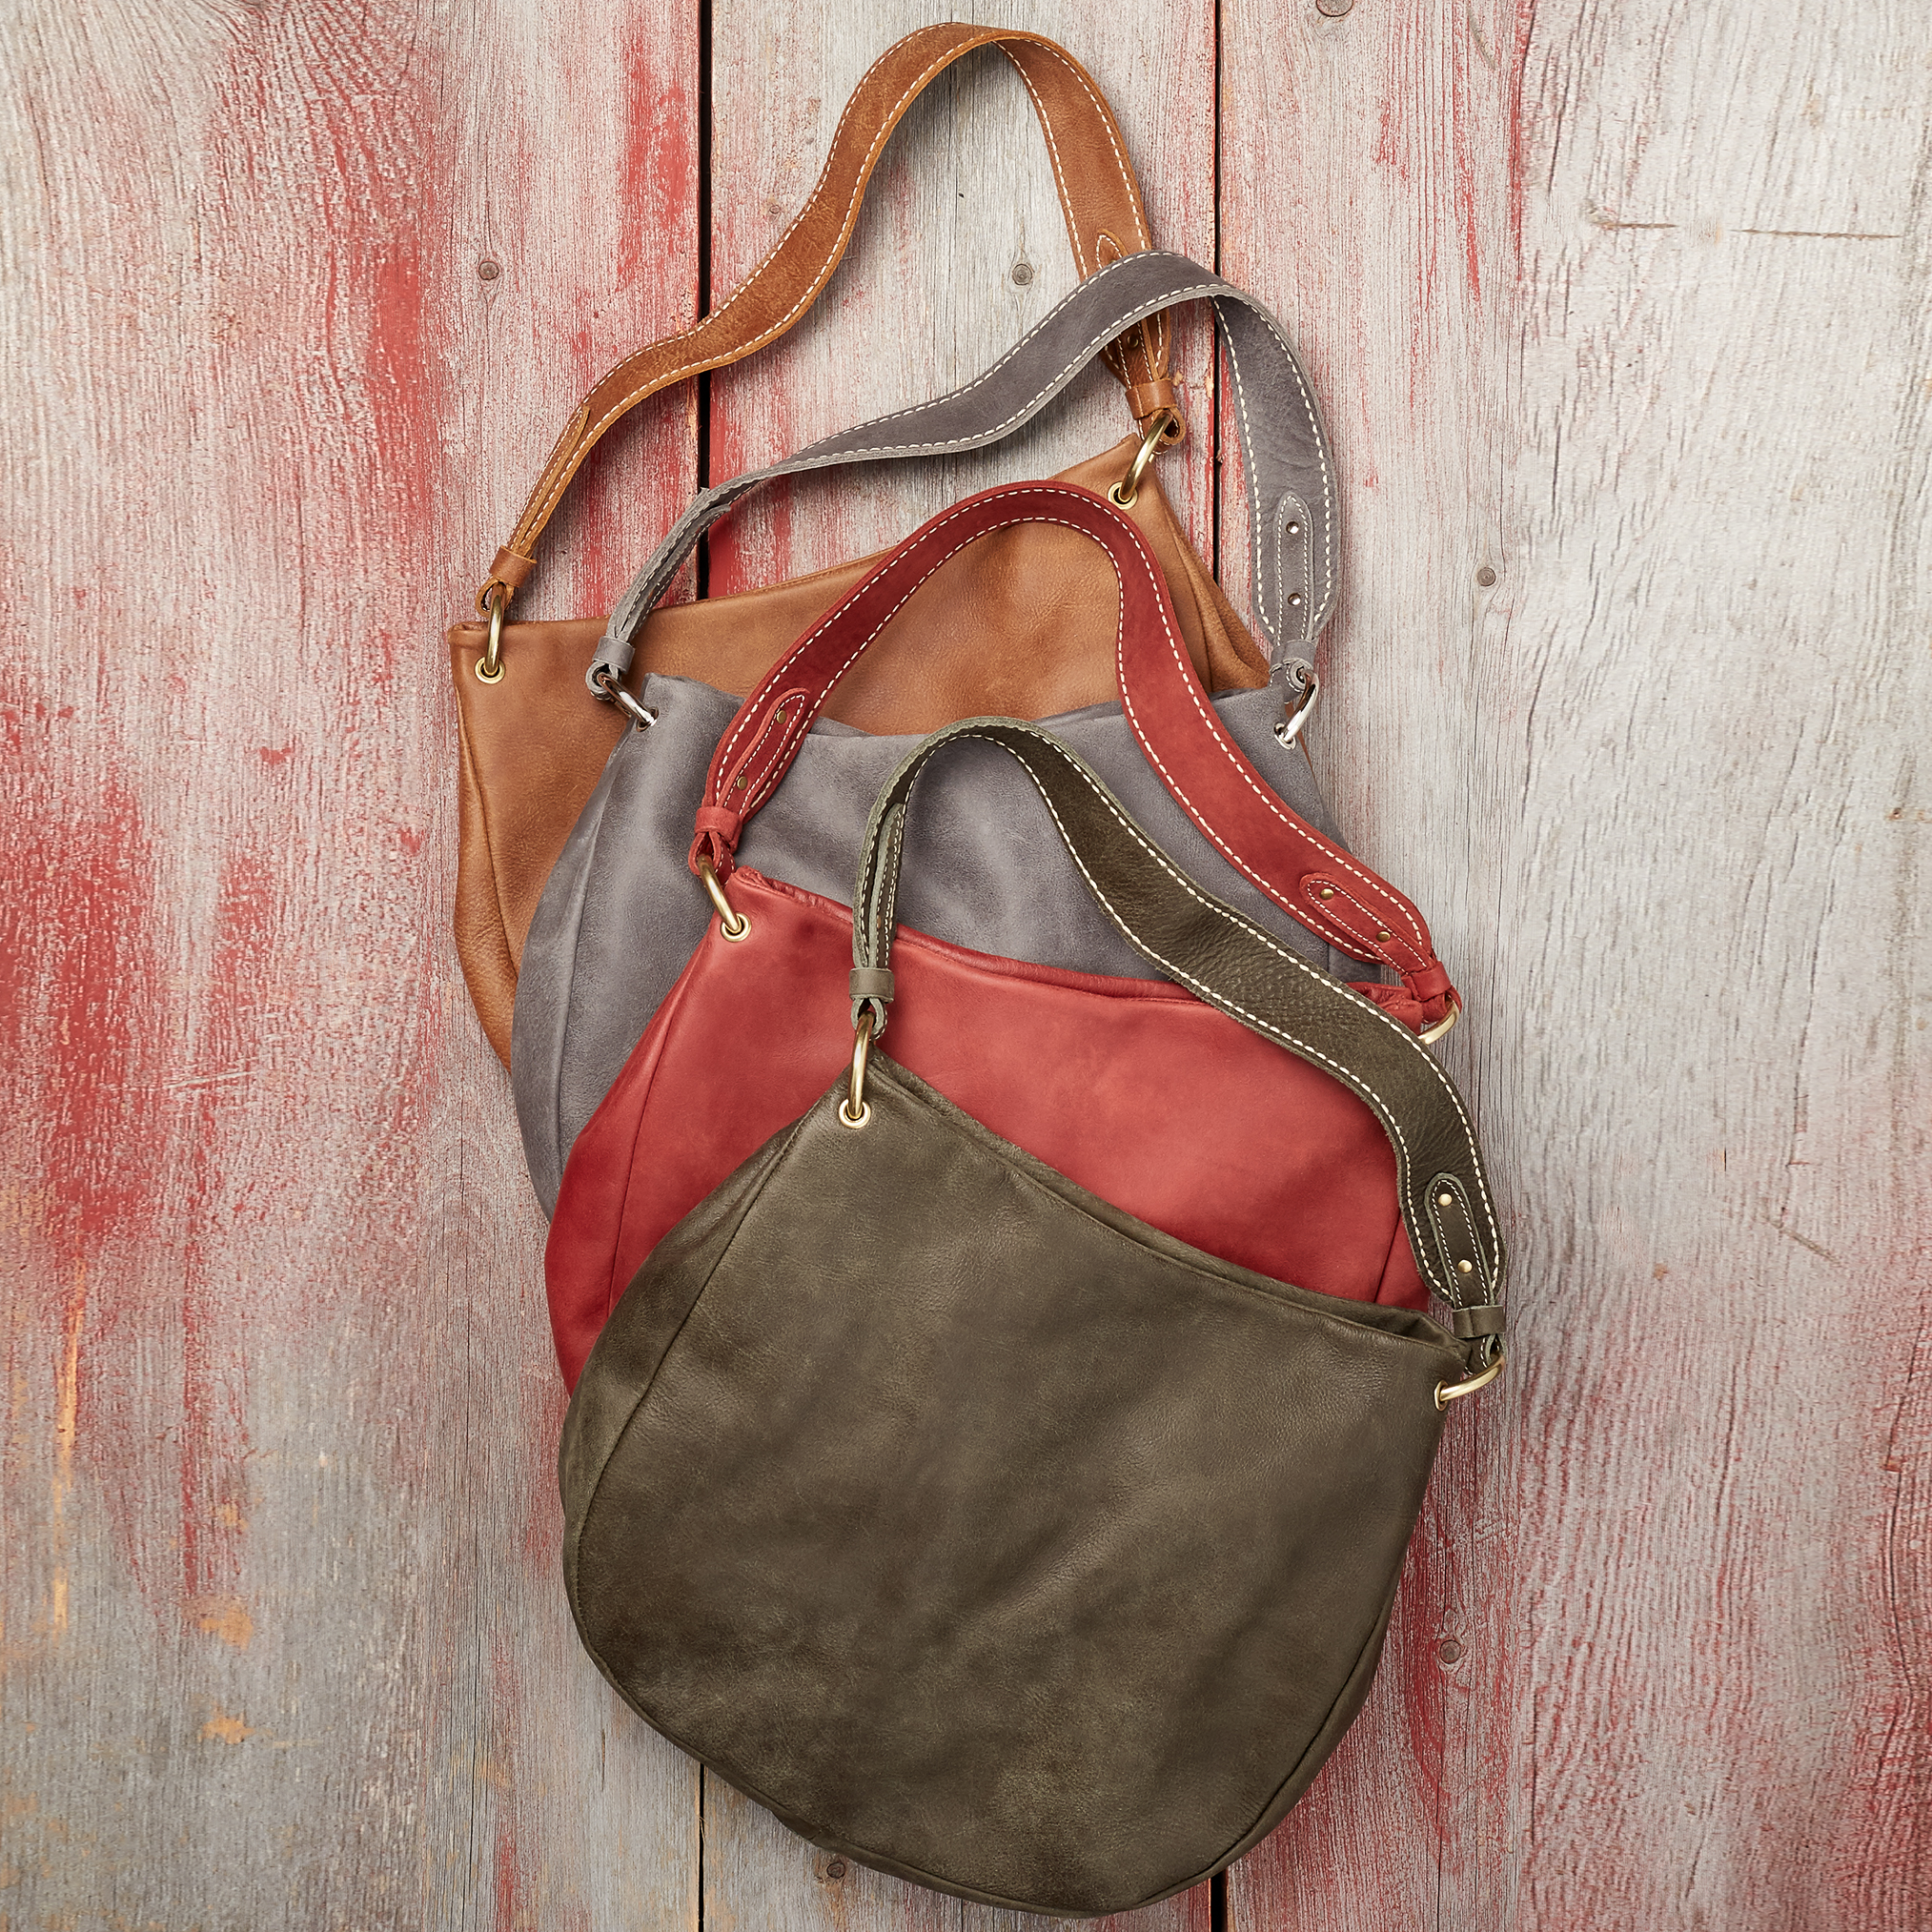 Roots-Women Shoulder Bags-Shop The Look: Our Fall Checklist-G